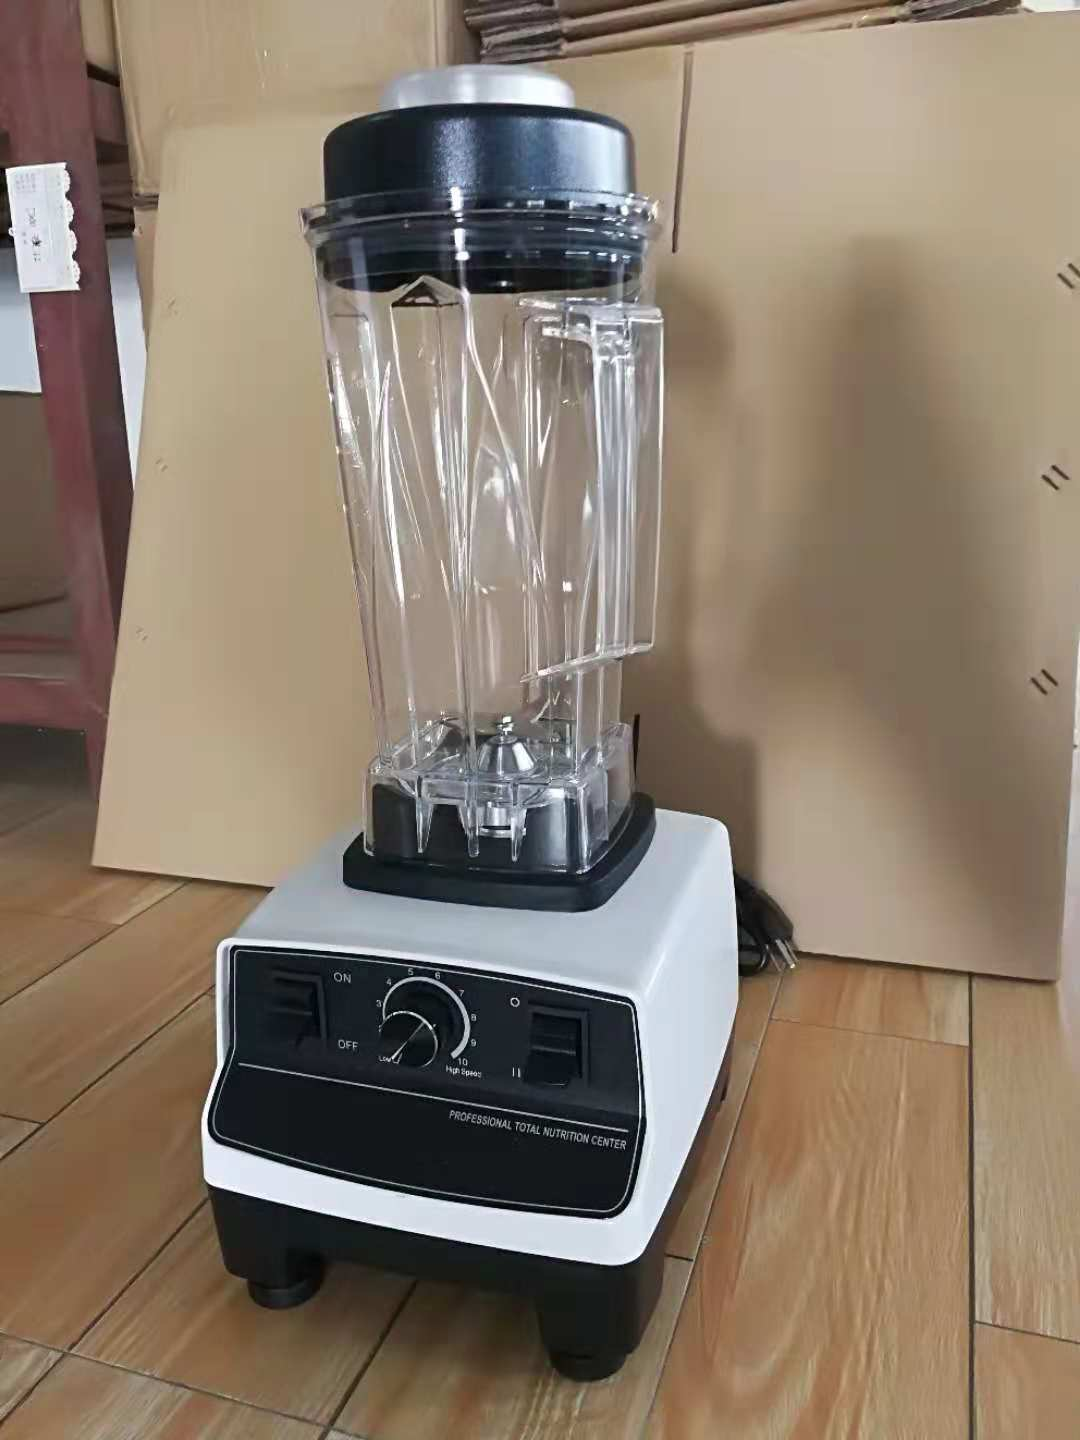 2200W Power Home Smoothies Blender Food Mixer Fruit Processor 3HP Grade Blender